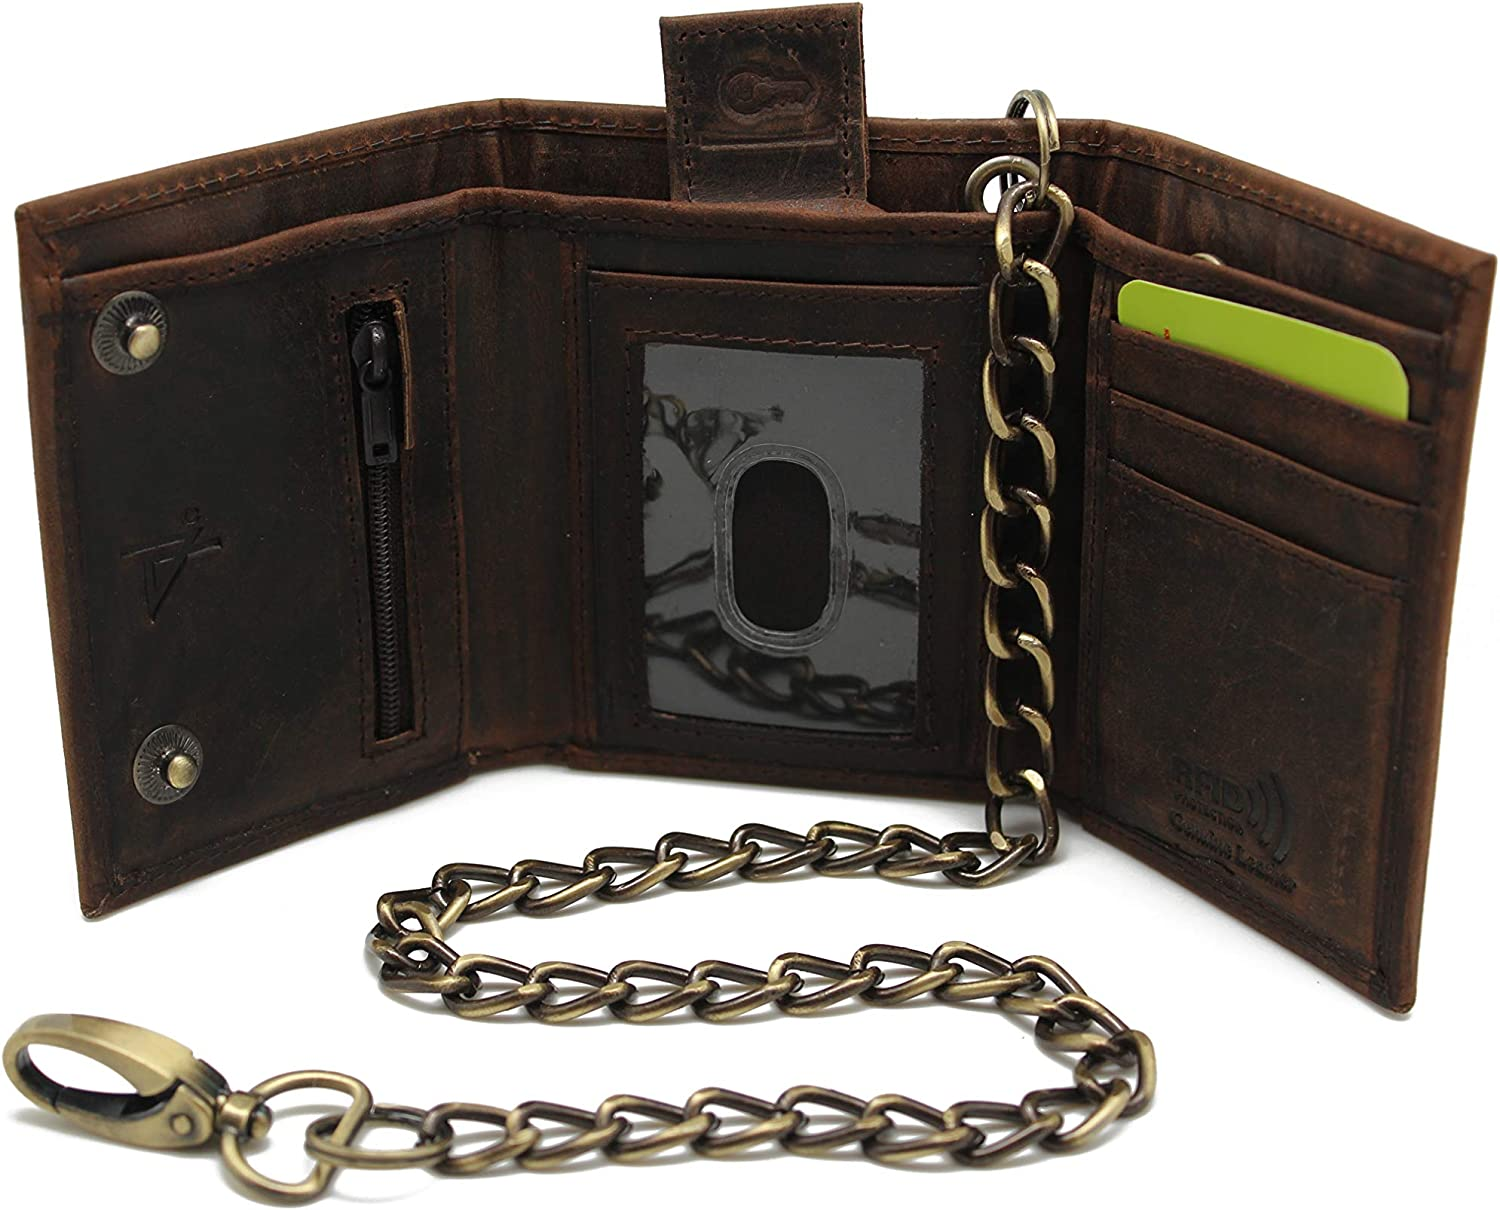 RFID safe Men's Trifold Chain Wallet Pure Leather Crazy Horse Brown Key Holder ID Window Card slot (Brown JTC111 Crazy Horse)